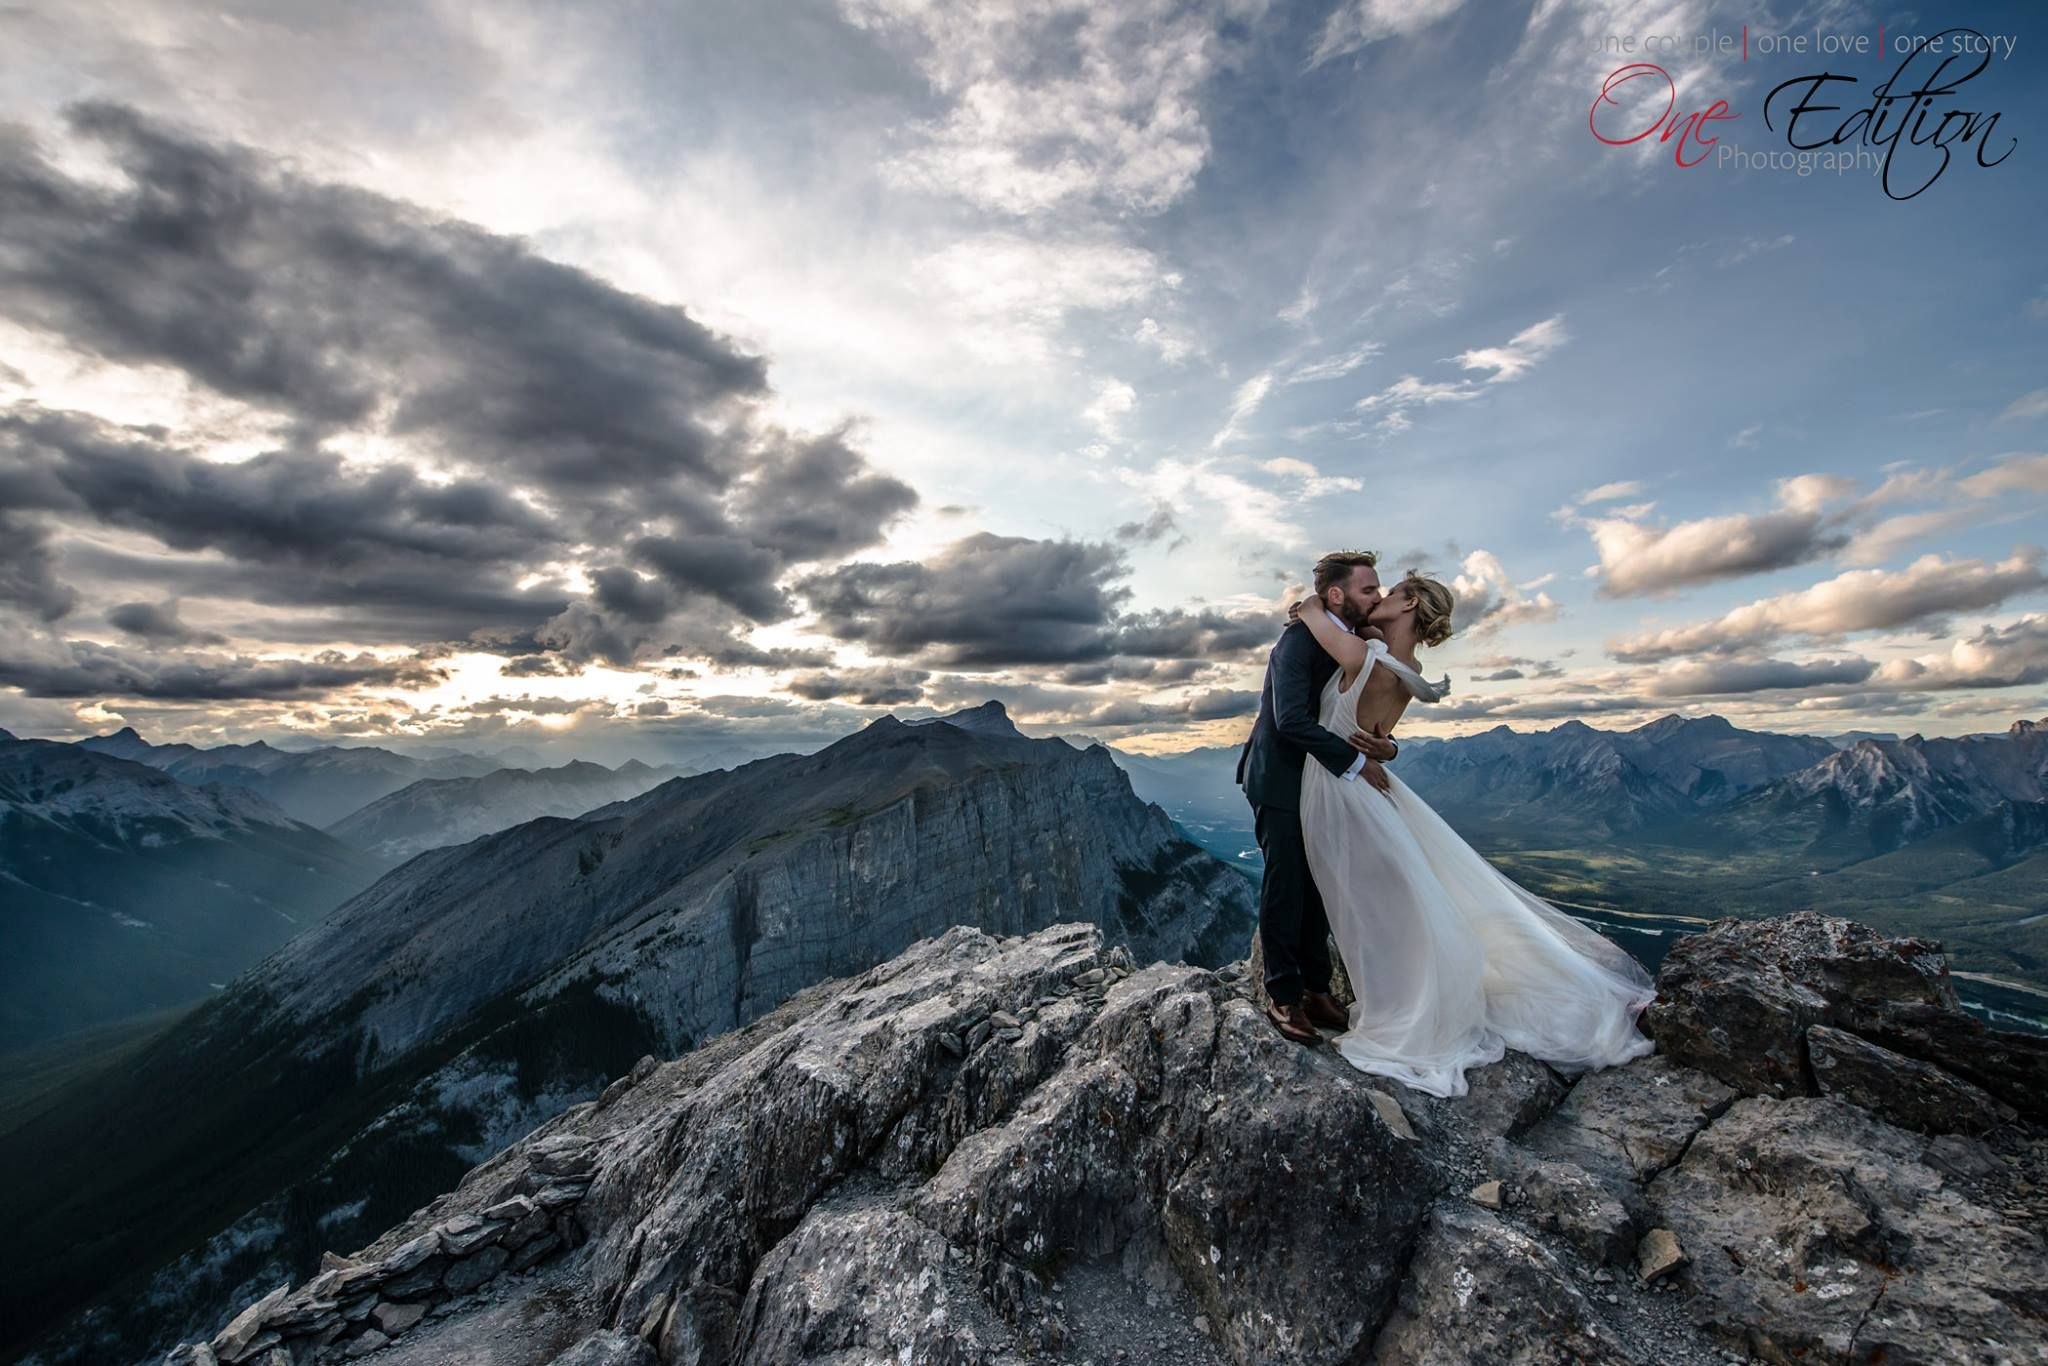 Beautiful Mountain Top Photoshoot With An Amazing Adventurous Canmore Weddings Photo By One Edition Photography